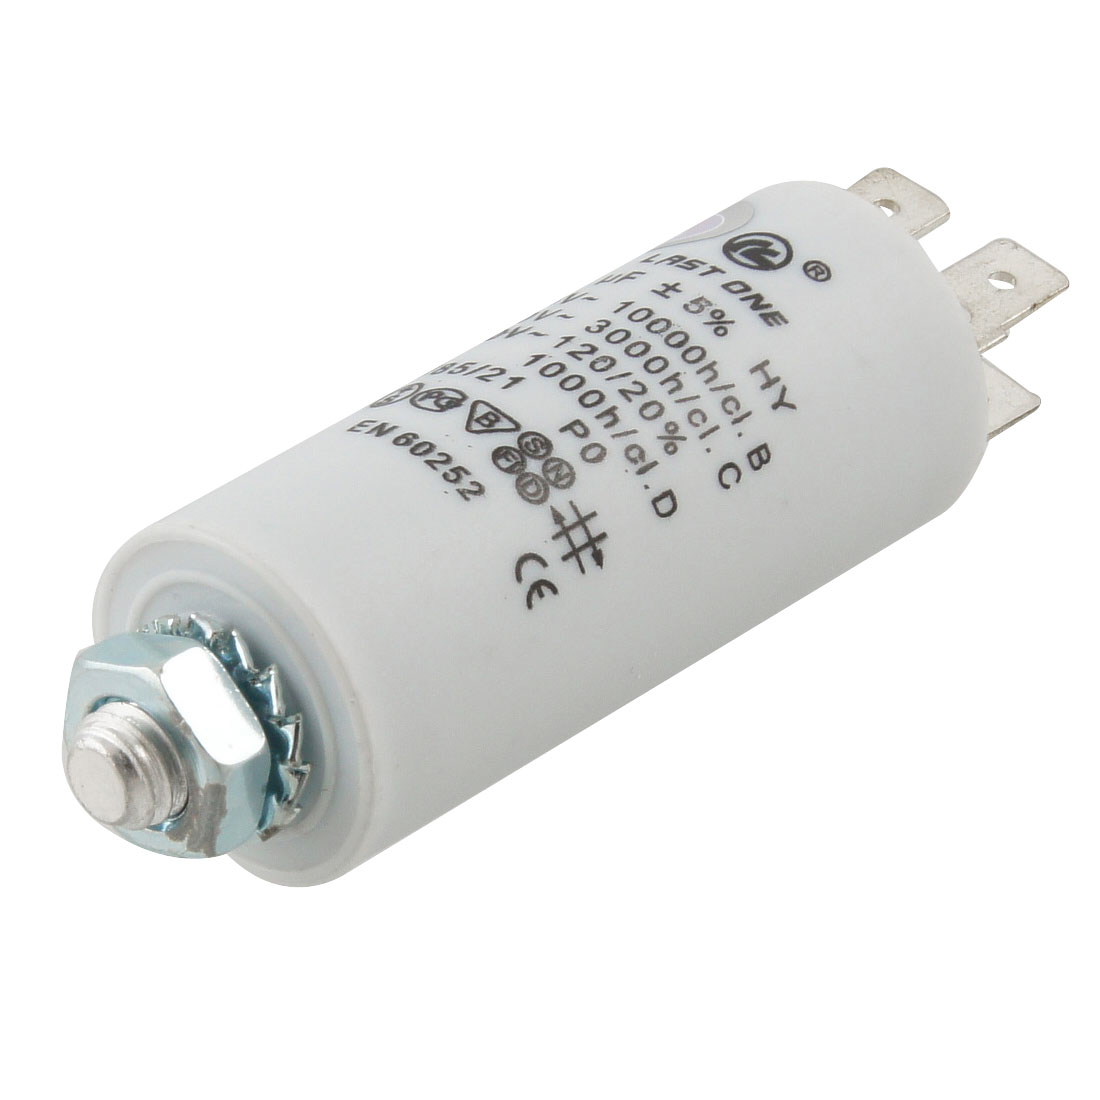 Washing Machine AC 450V 4uF 8mm Thread Non Polar Motor Running Capacitor